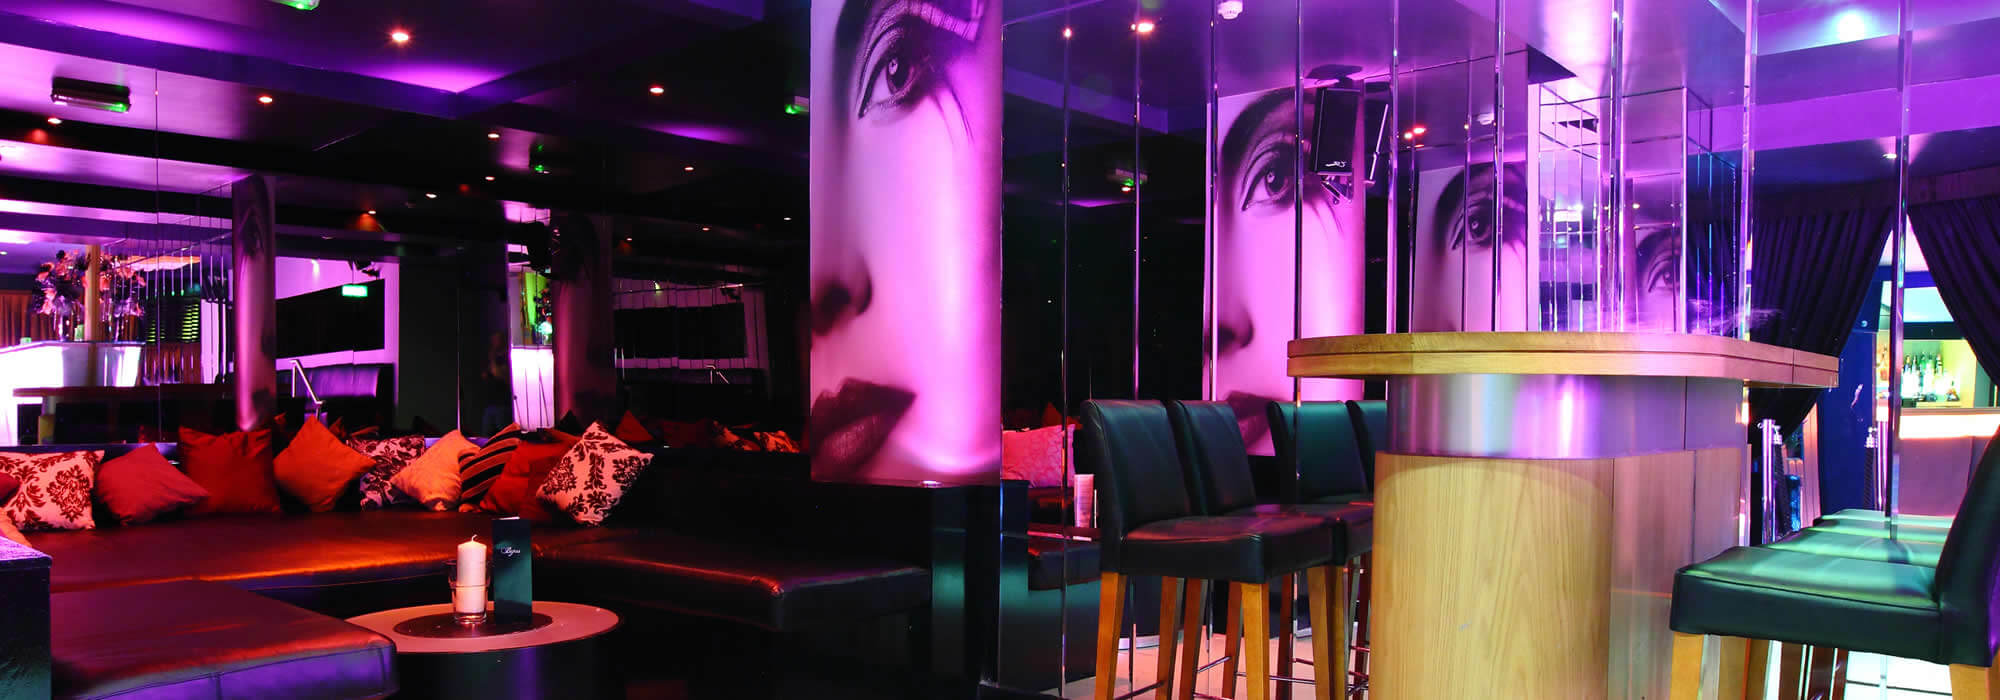 Nightclub Industry Header Image